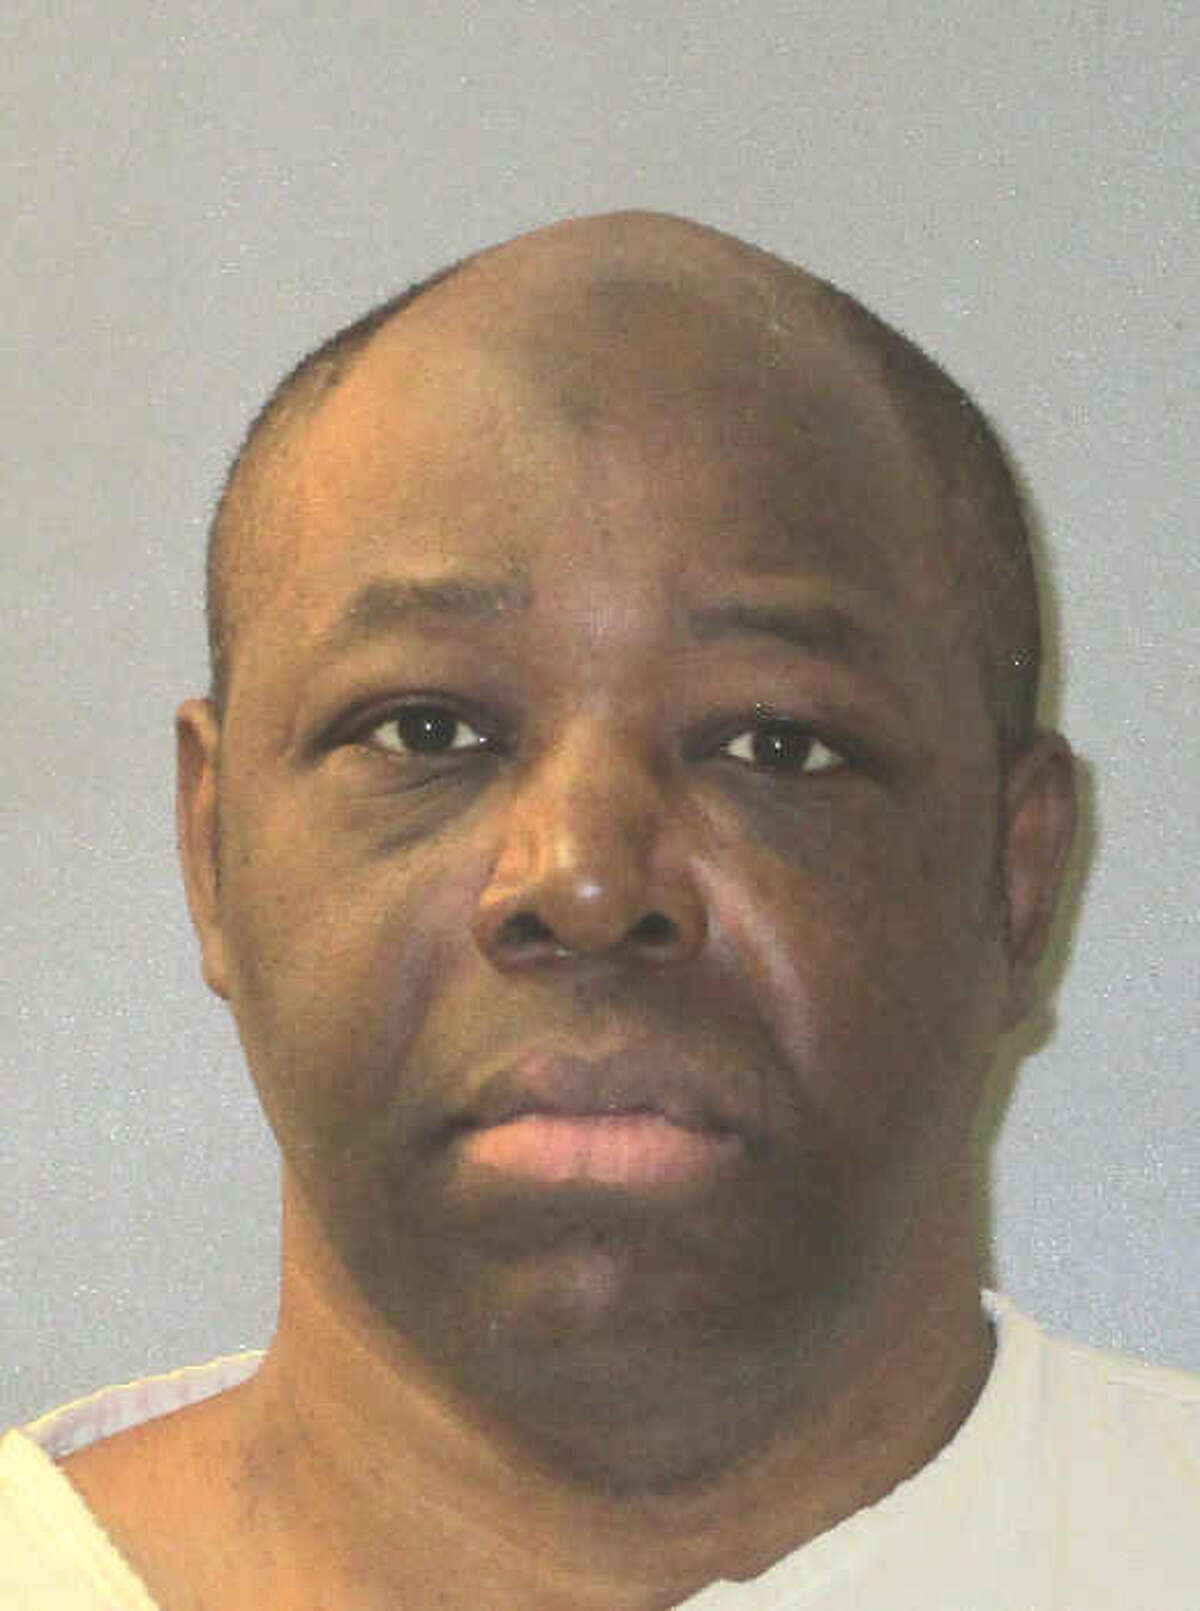 Emanuel Kemp has been on death row since 1988 for the slaying of a woman in Tarrant County.